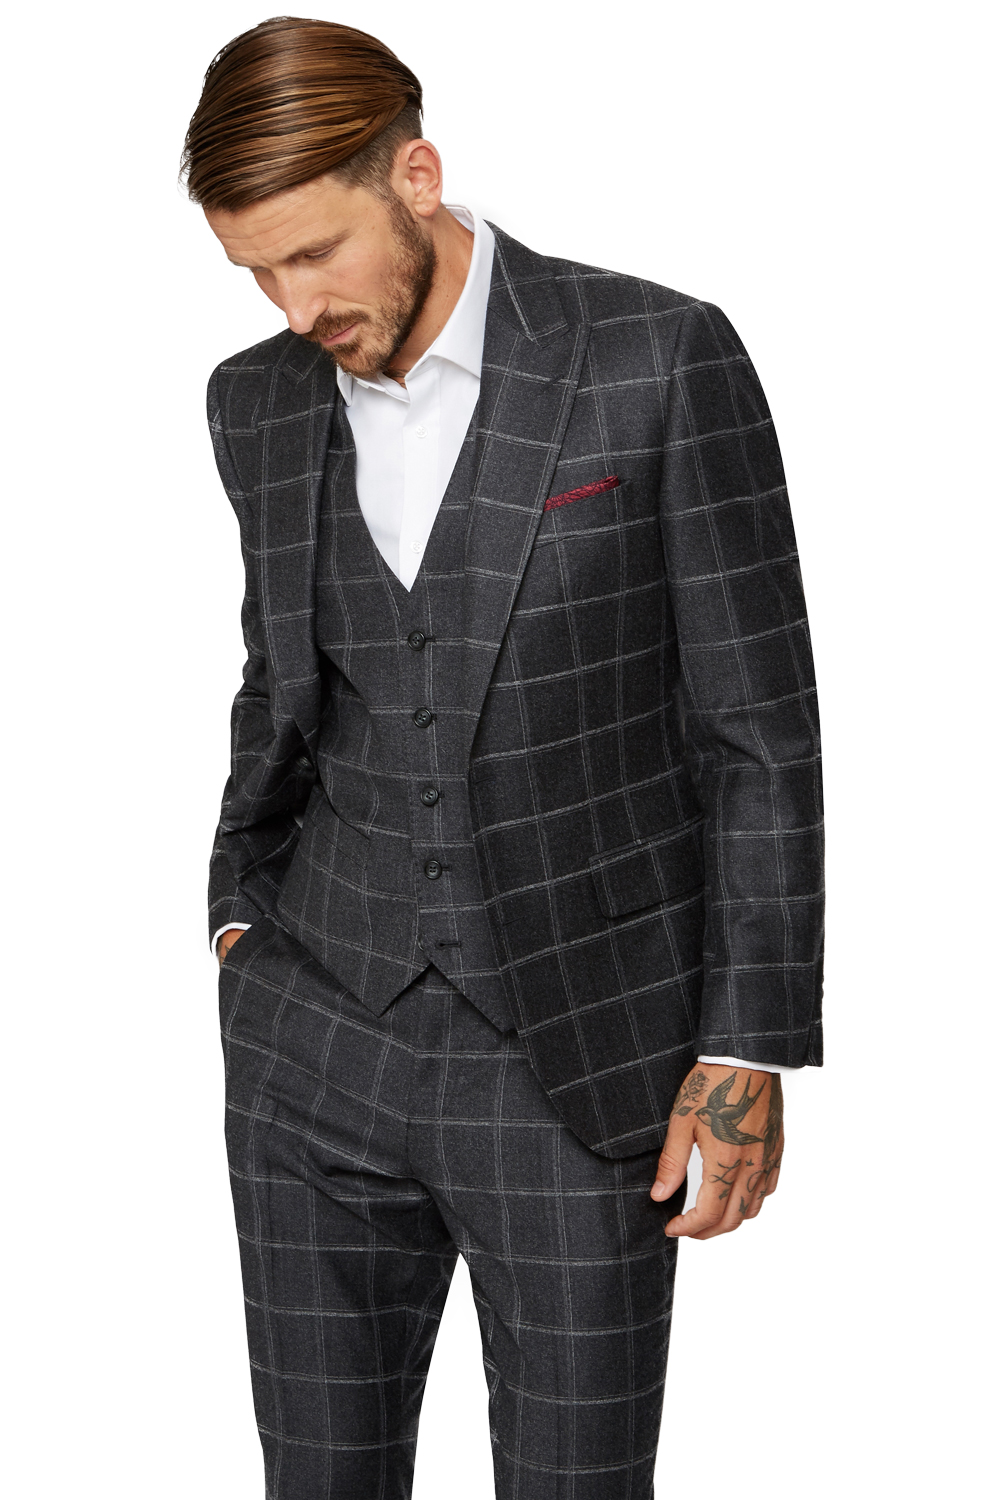 Moss Bros Mens Dark Grey Suit Jacket Tailored Fit Windowpane Check ...